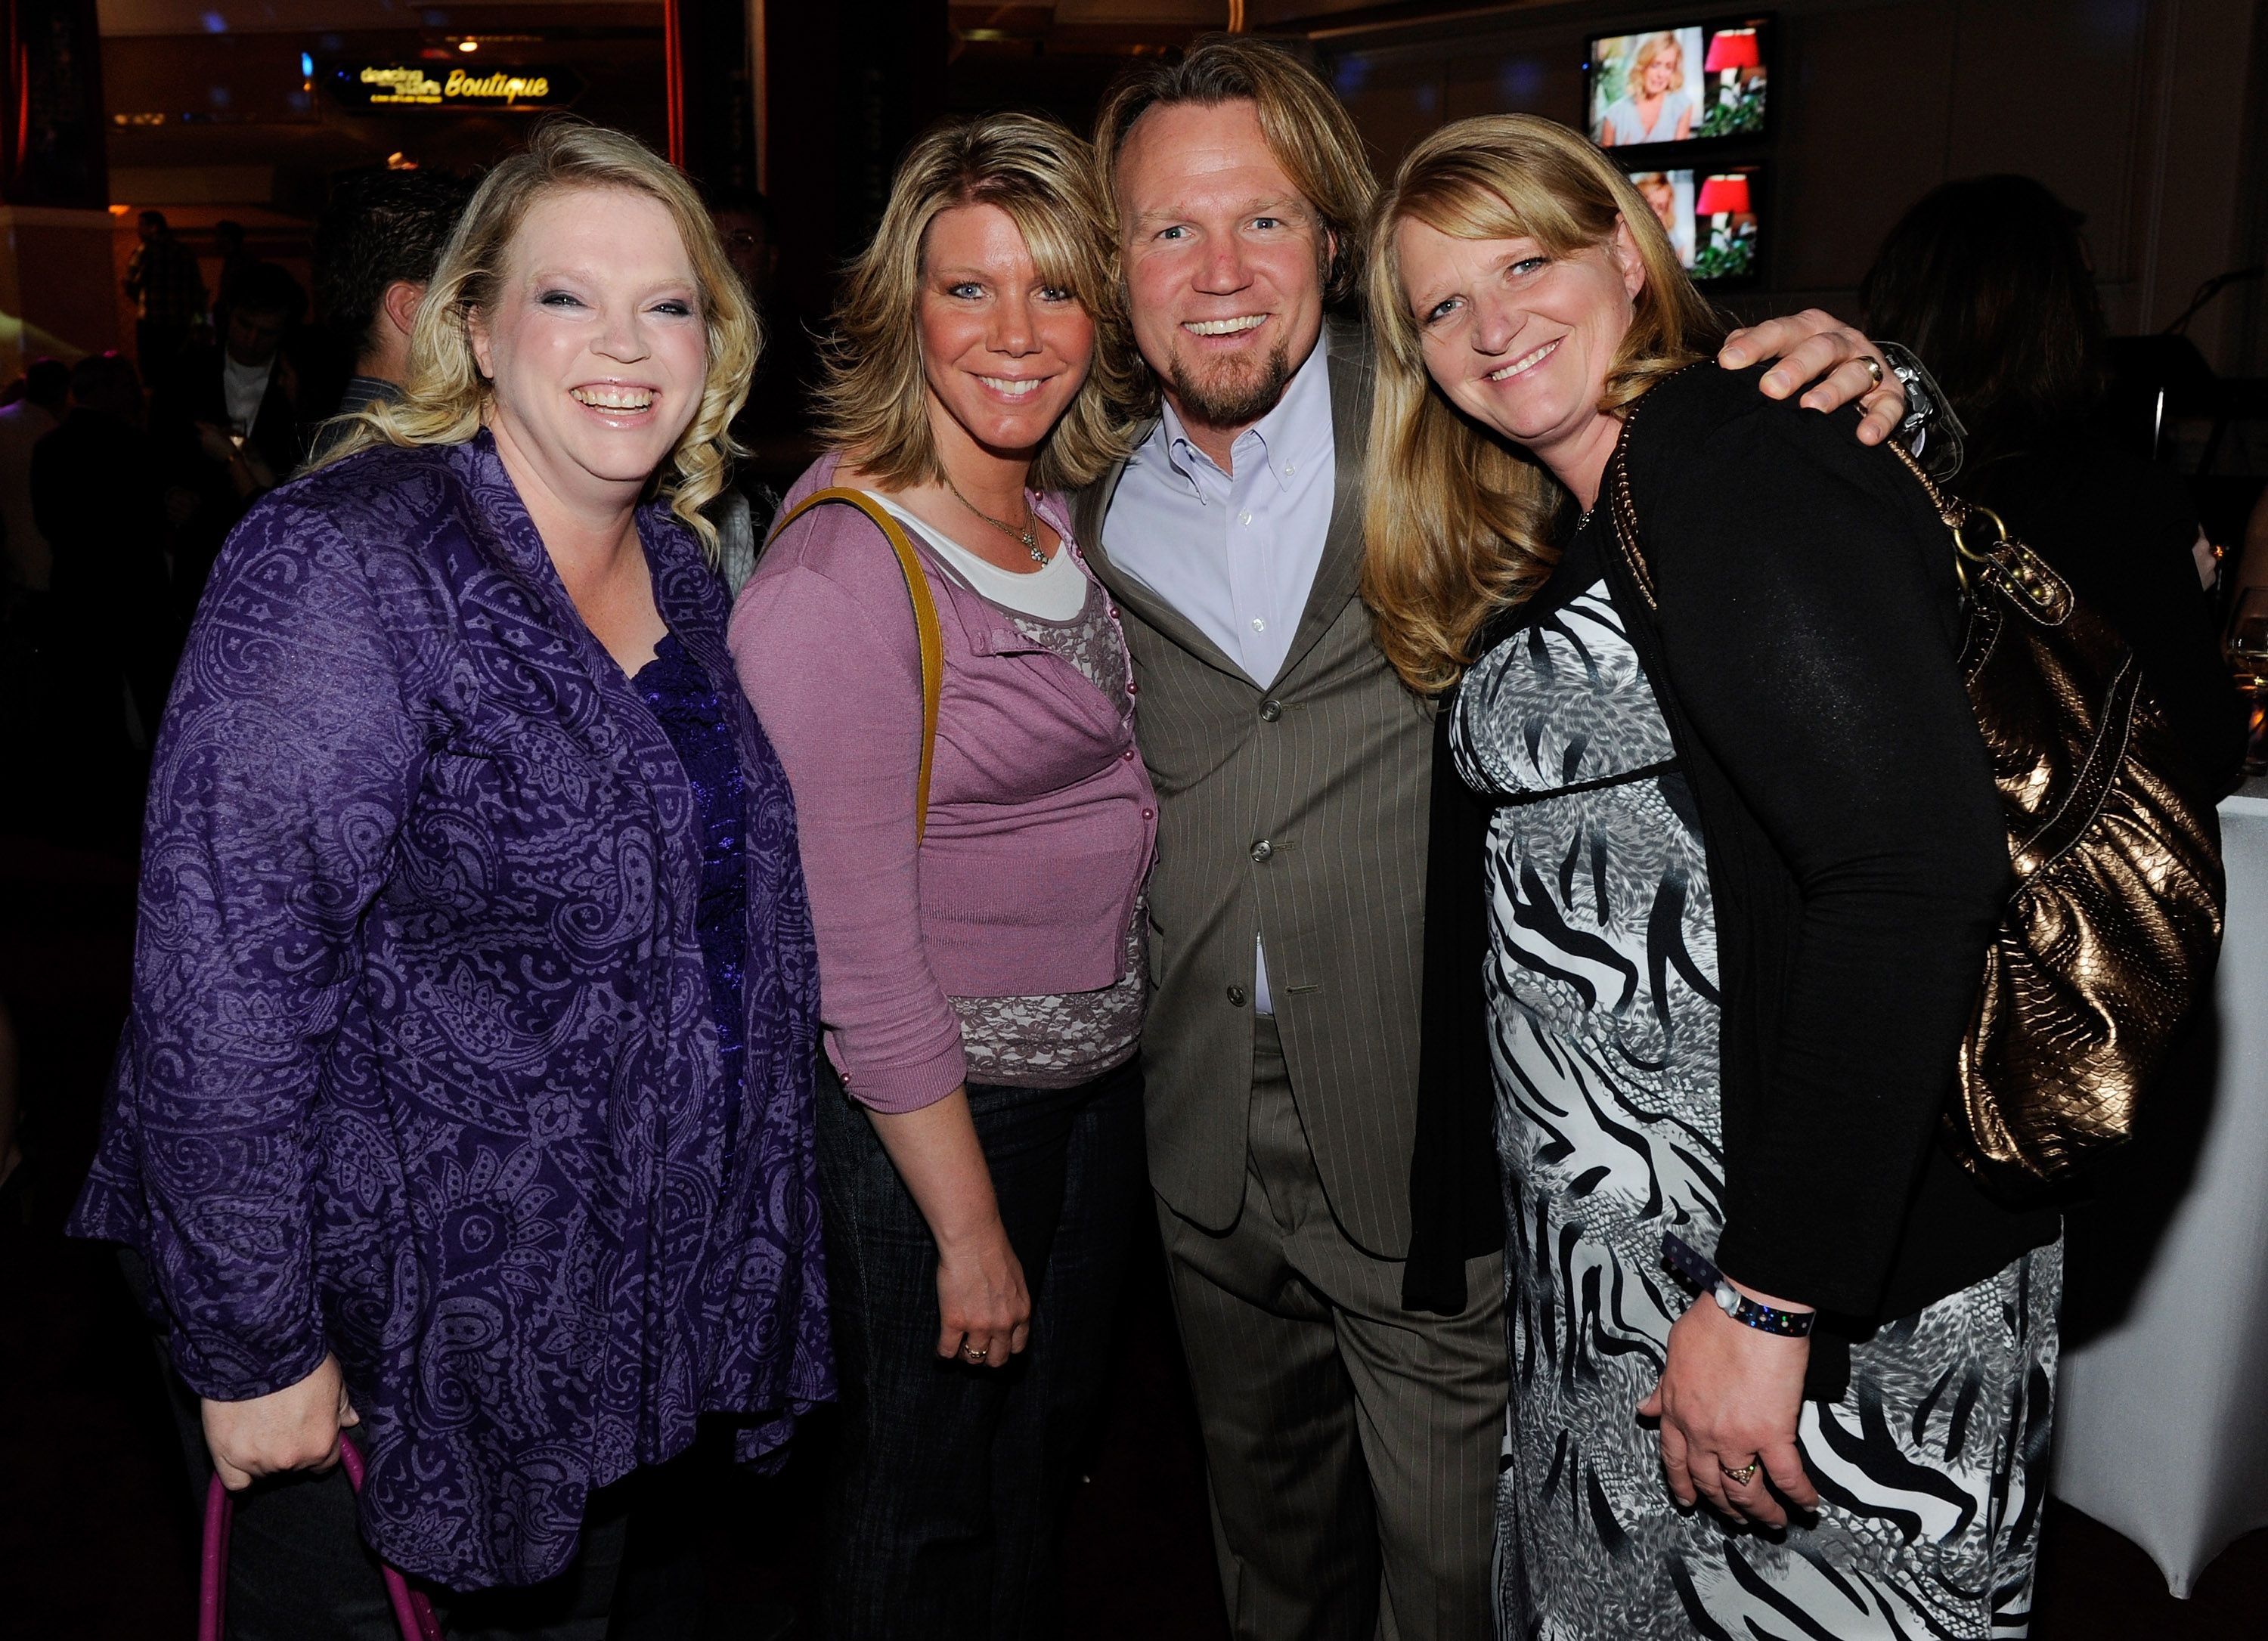 """Janelle Brown, Meri Brown, Kody Brown and Christine Brown from """"Sister Wives"""" at a pre-show reception for the grand opening of """"Dancing With the Stars: Live in Las Vegas"""" at the New Tropicana Las Vegas April 13, 2012 